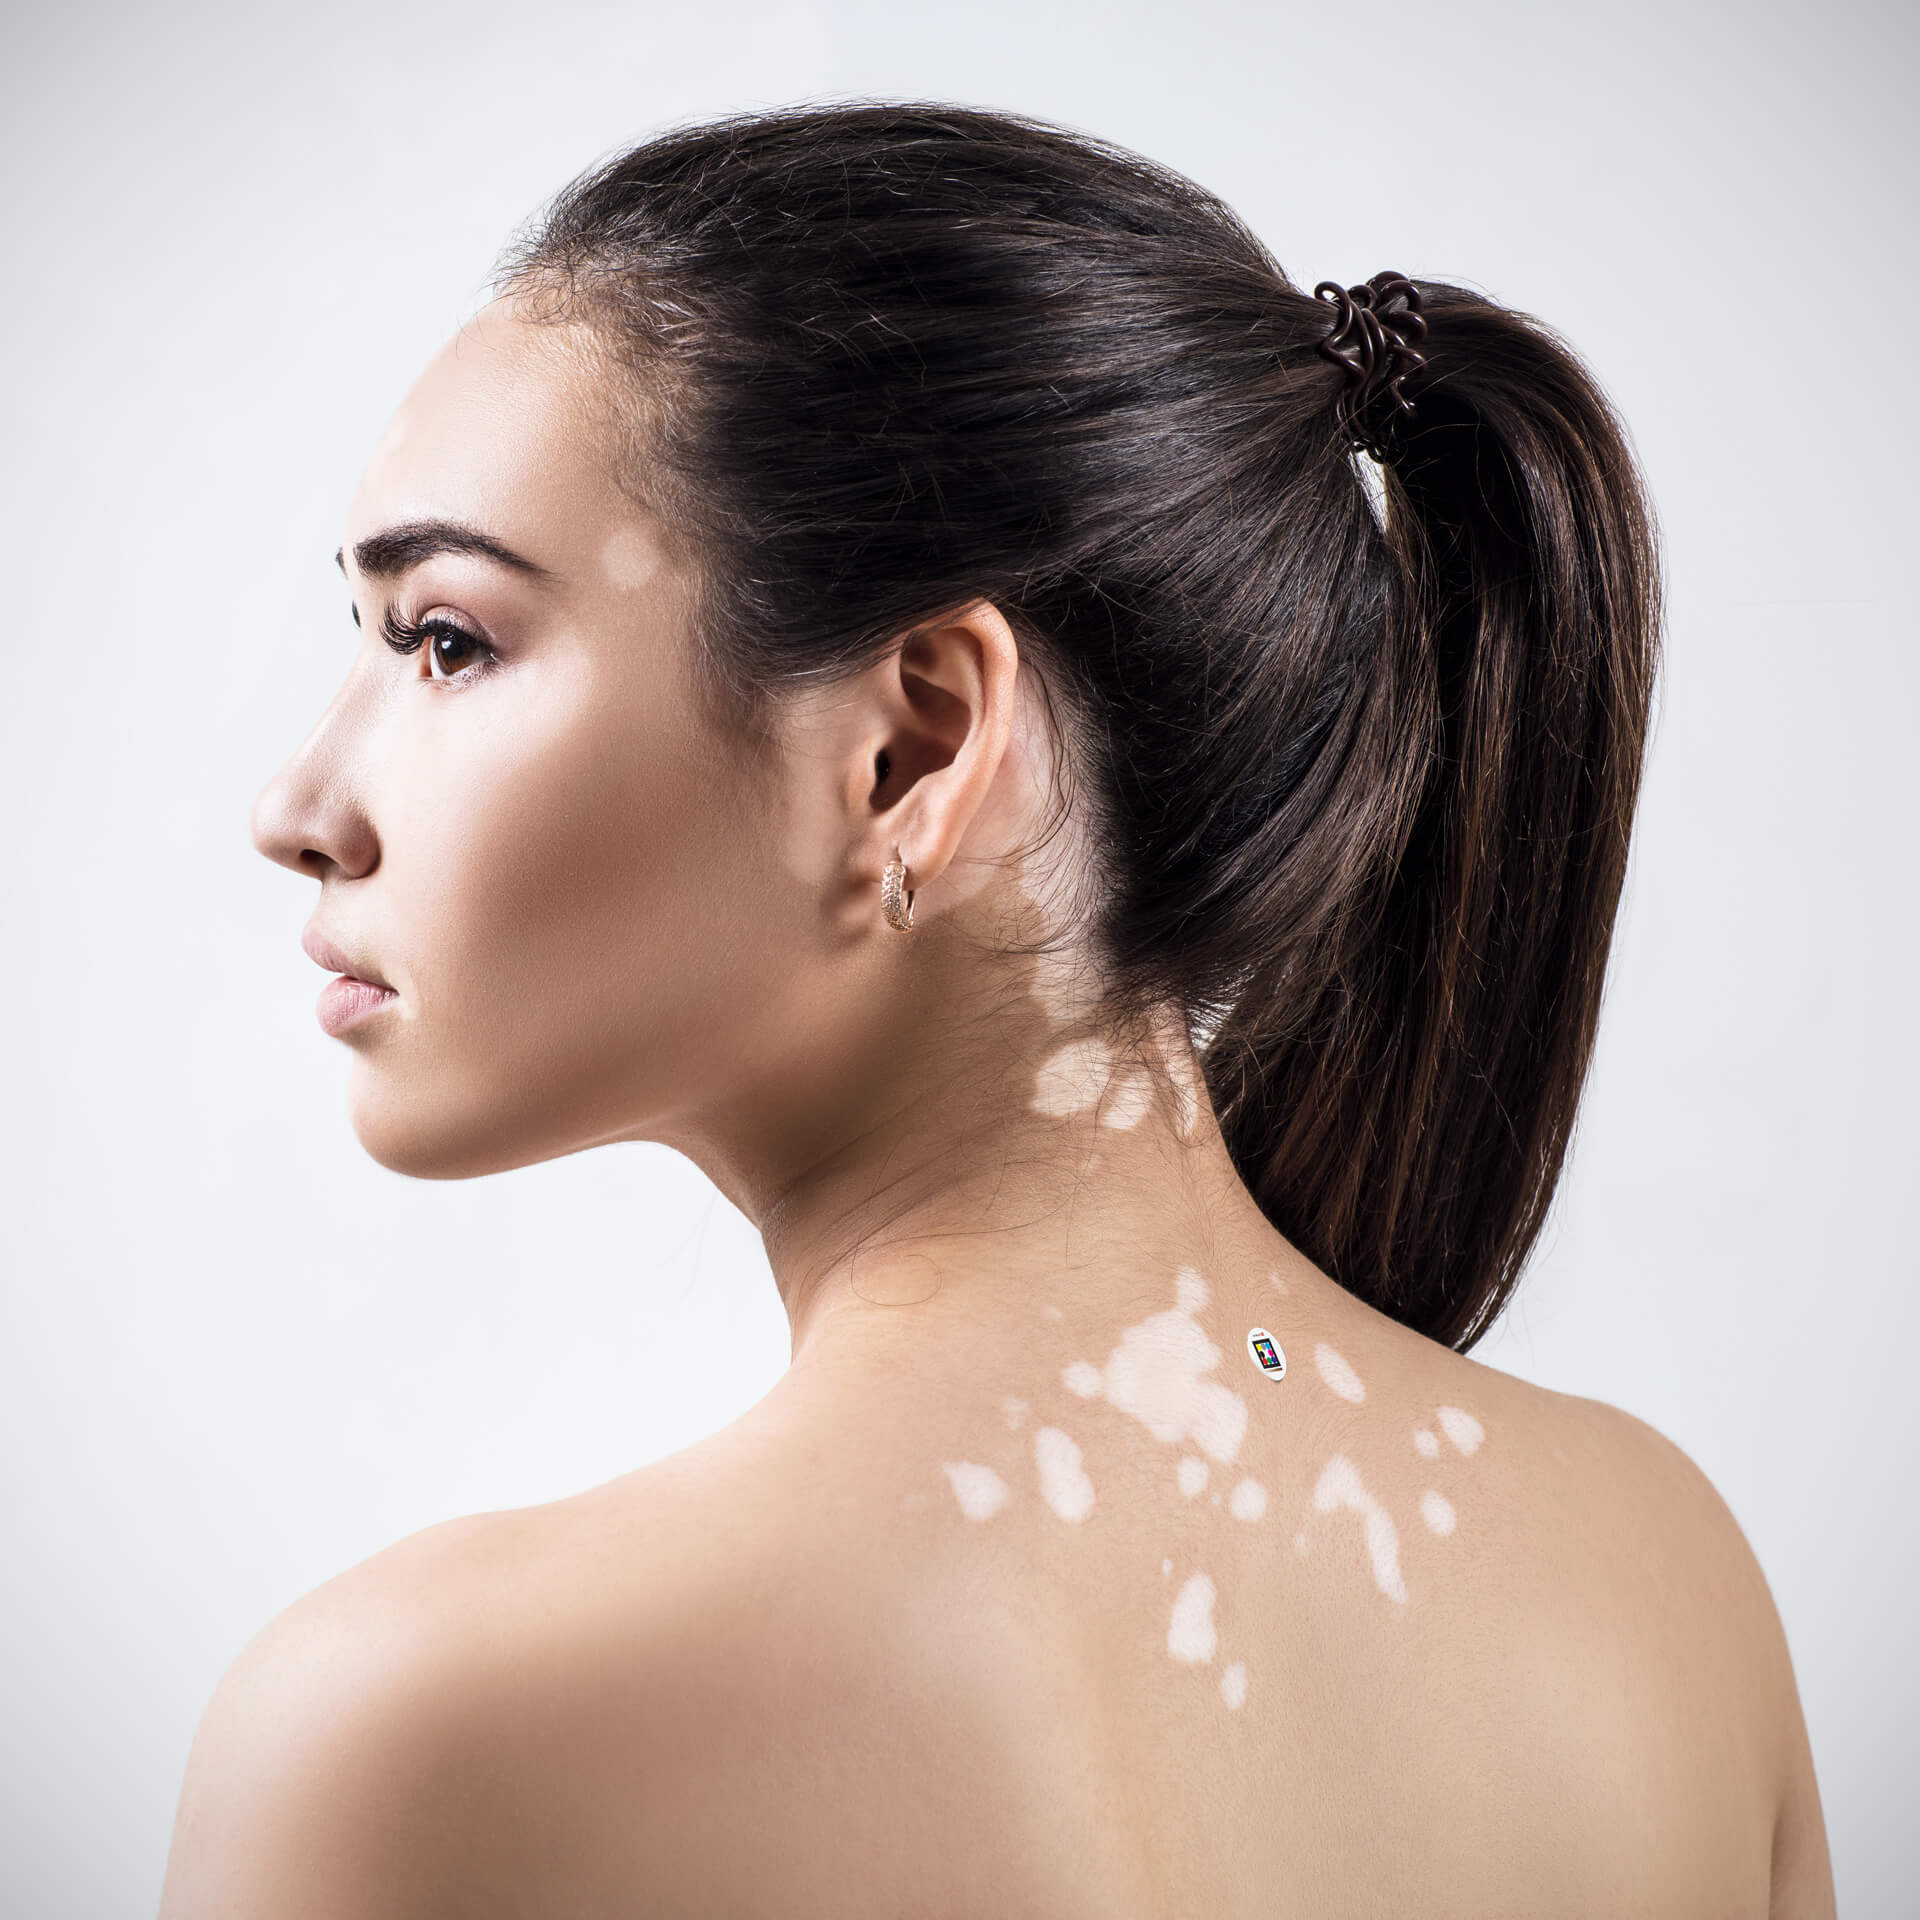 Young woman with vitiligo and Scarletred Skin patch